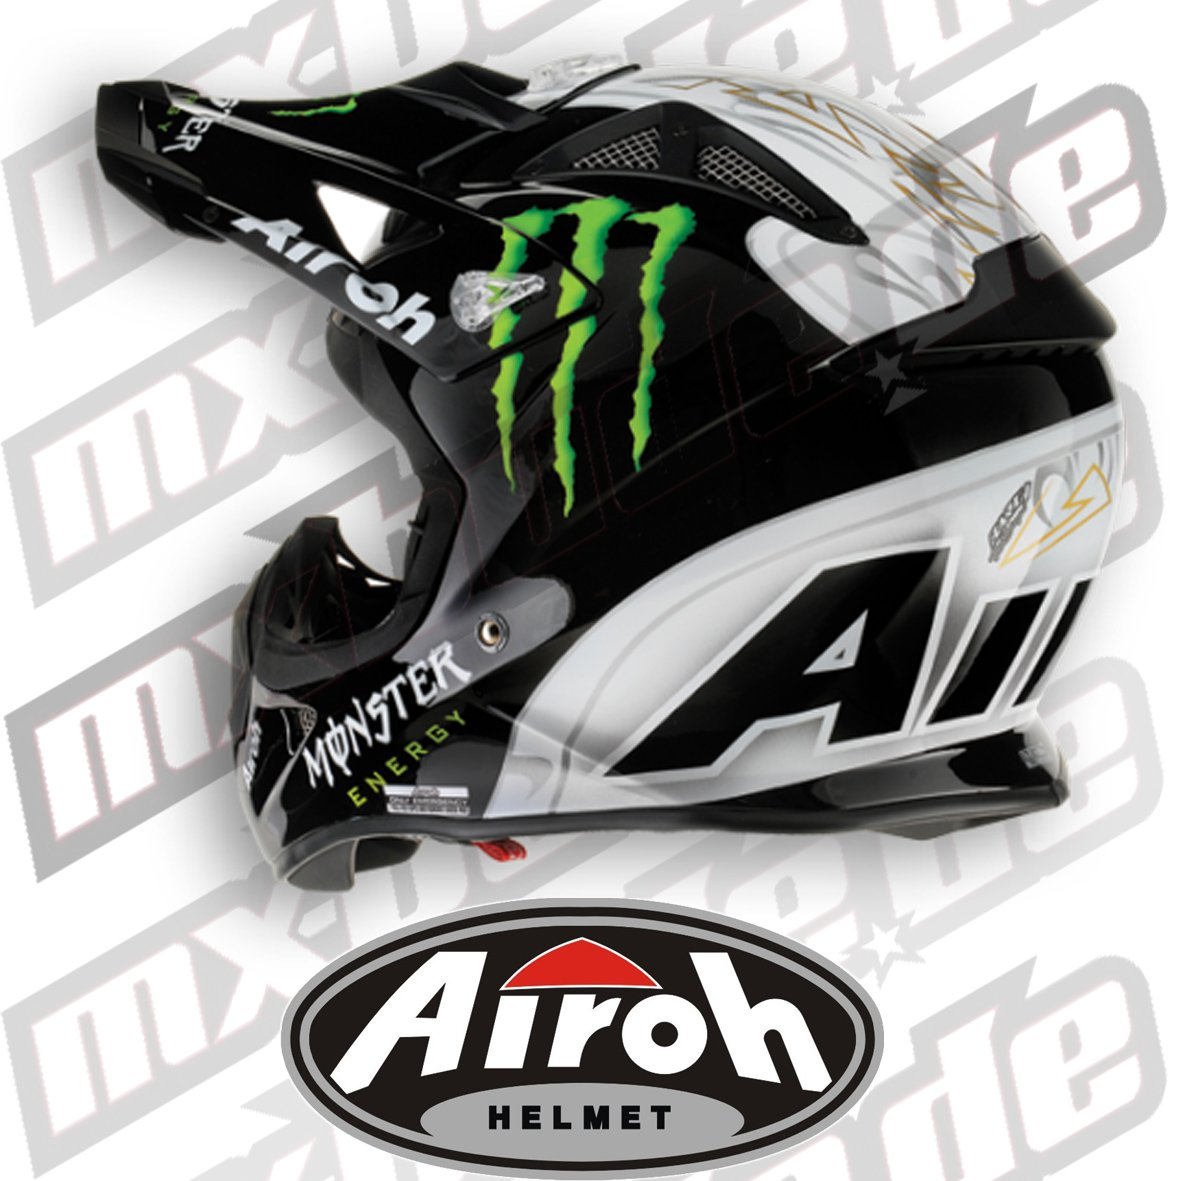 Airoh - Airoh Aviator Monster - Casco Cross - Talla : Xl (61/62): Amazon.es: Coche y moto